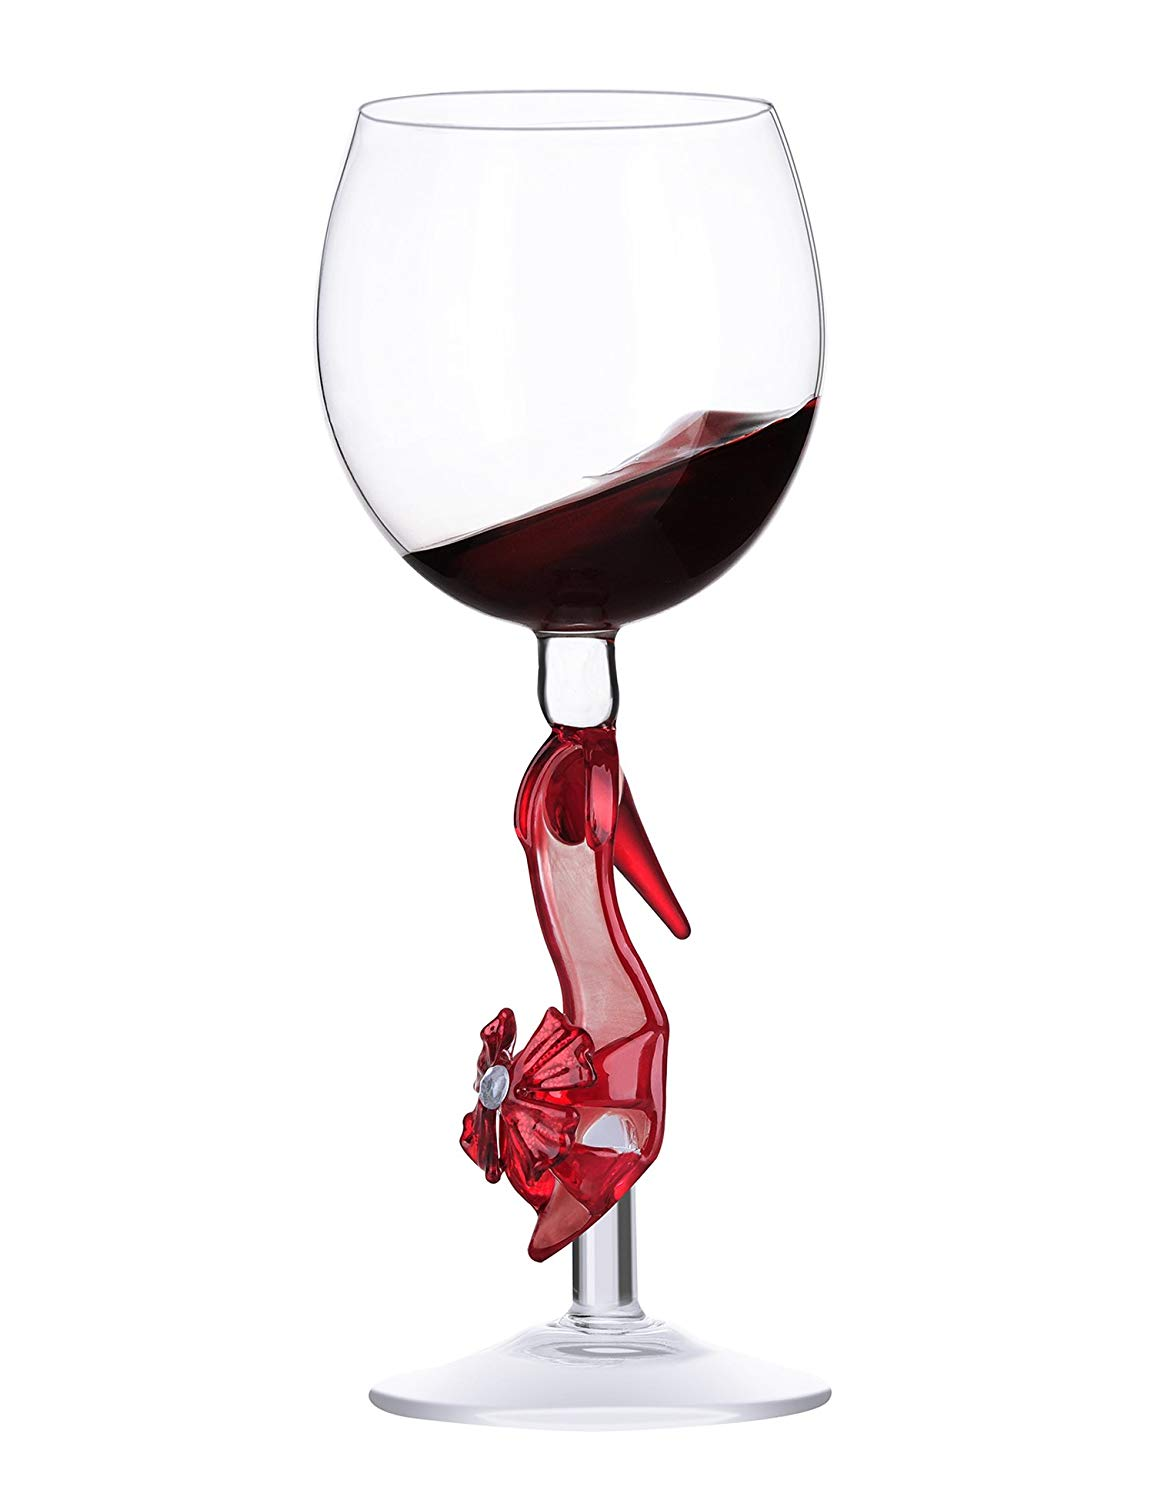 Lovinpro Hand-Crafted Balloon Wine Glass 13 ounce Handblown Glassware for Women, Wedding,Anniversary,Festival Best Gift For Wine Lovers (Red Heels)